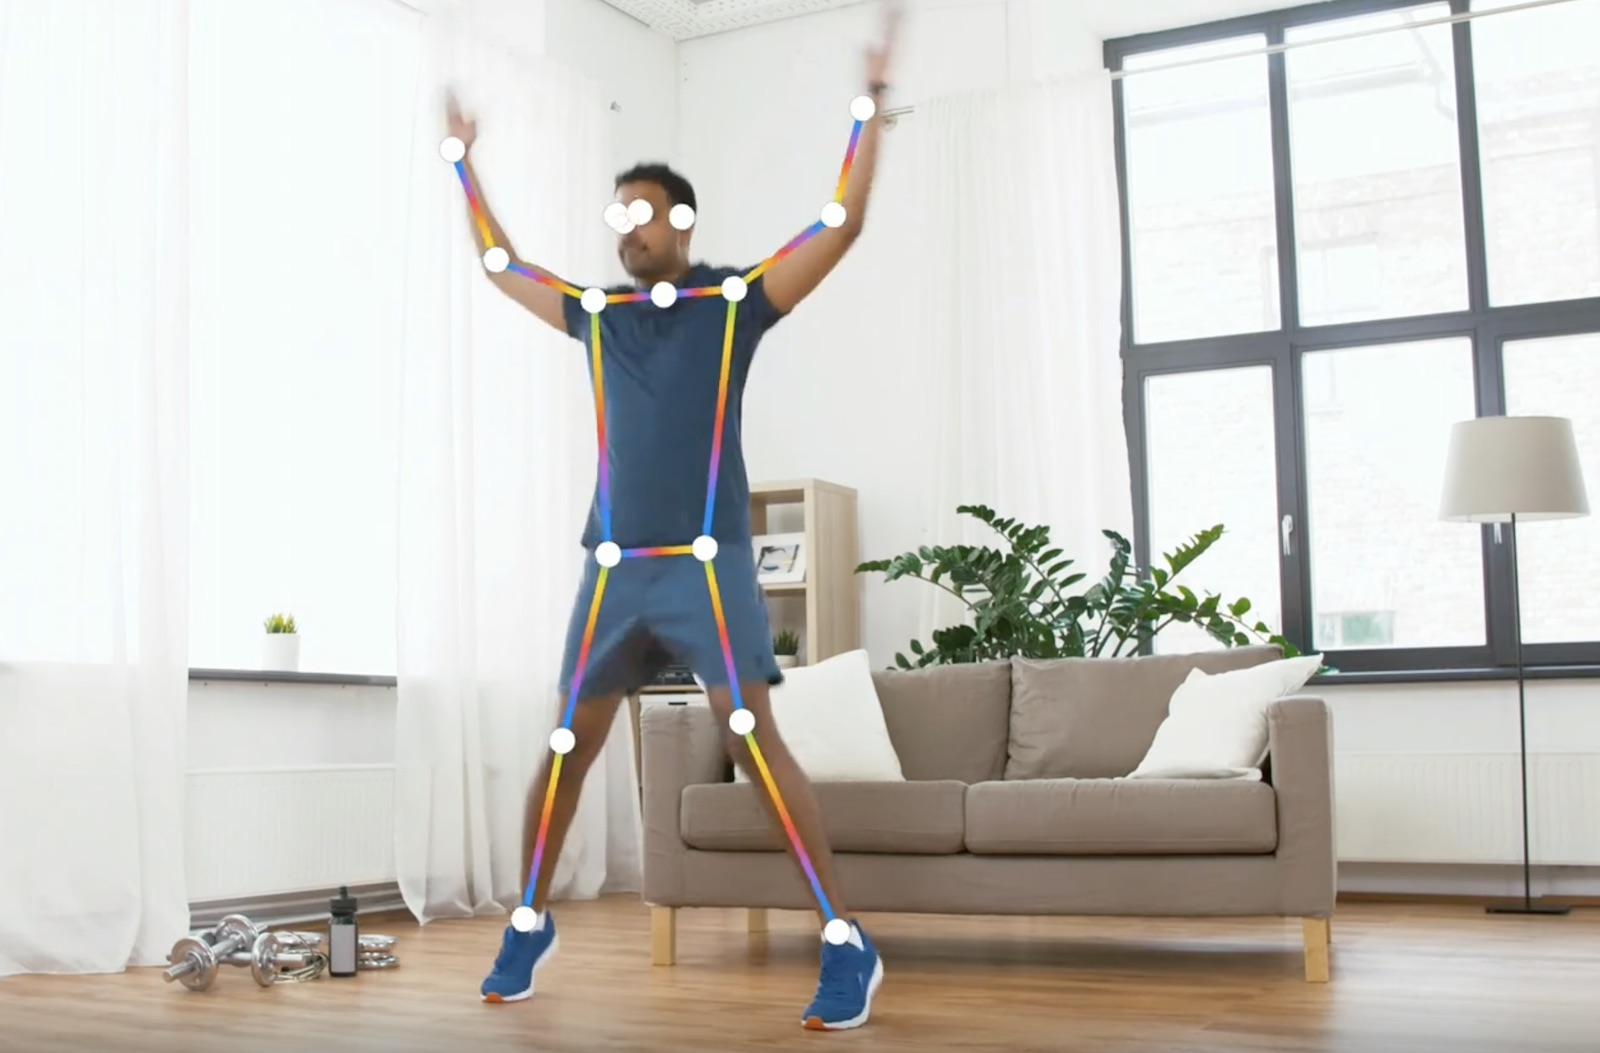 apple vision framework human body pose detection jumping jack